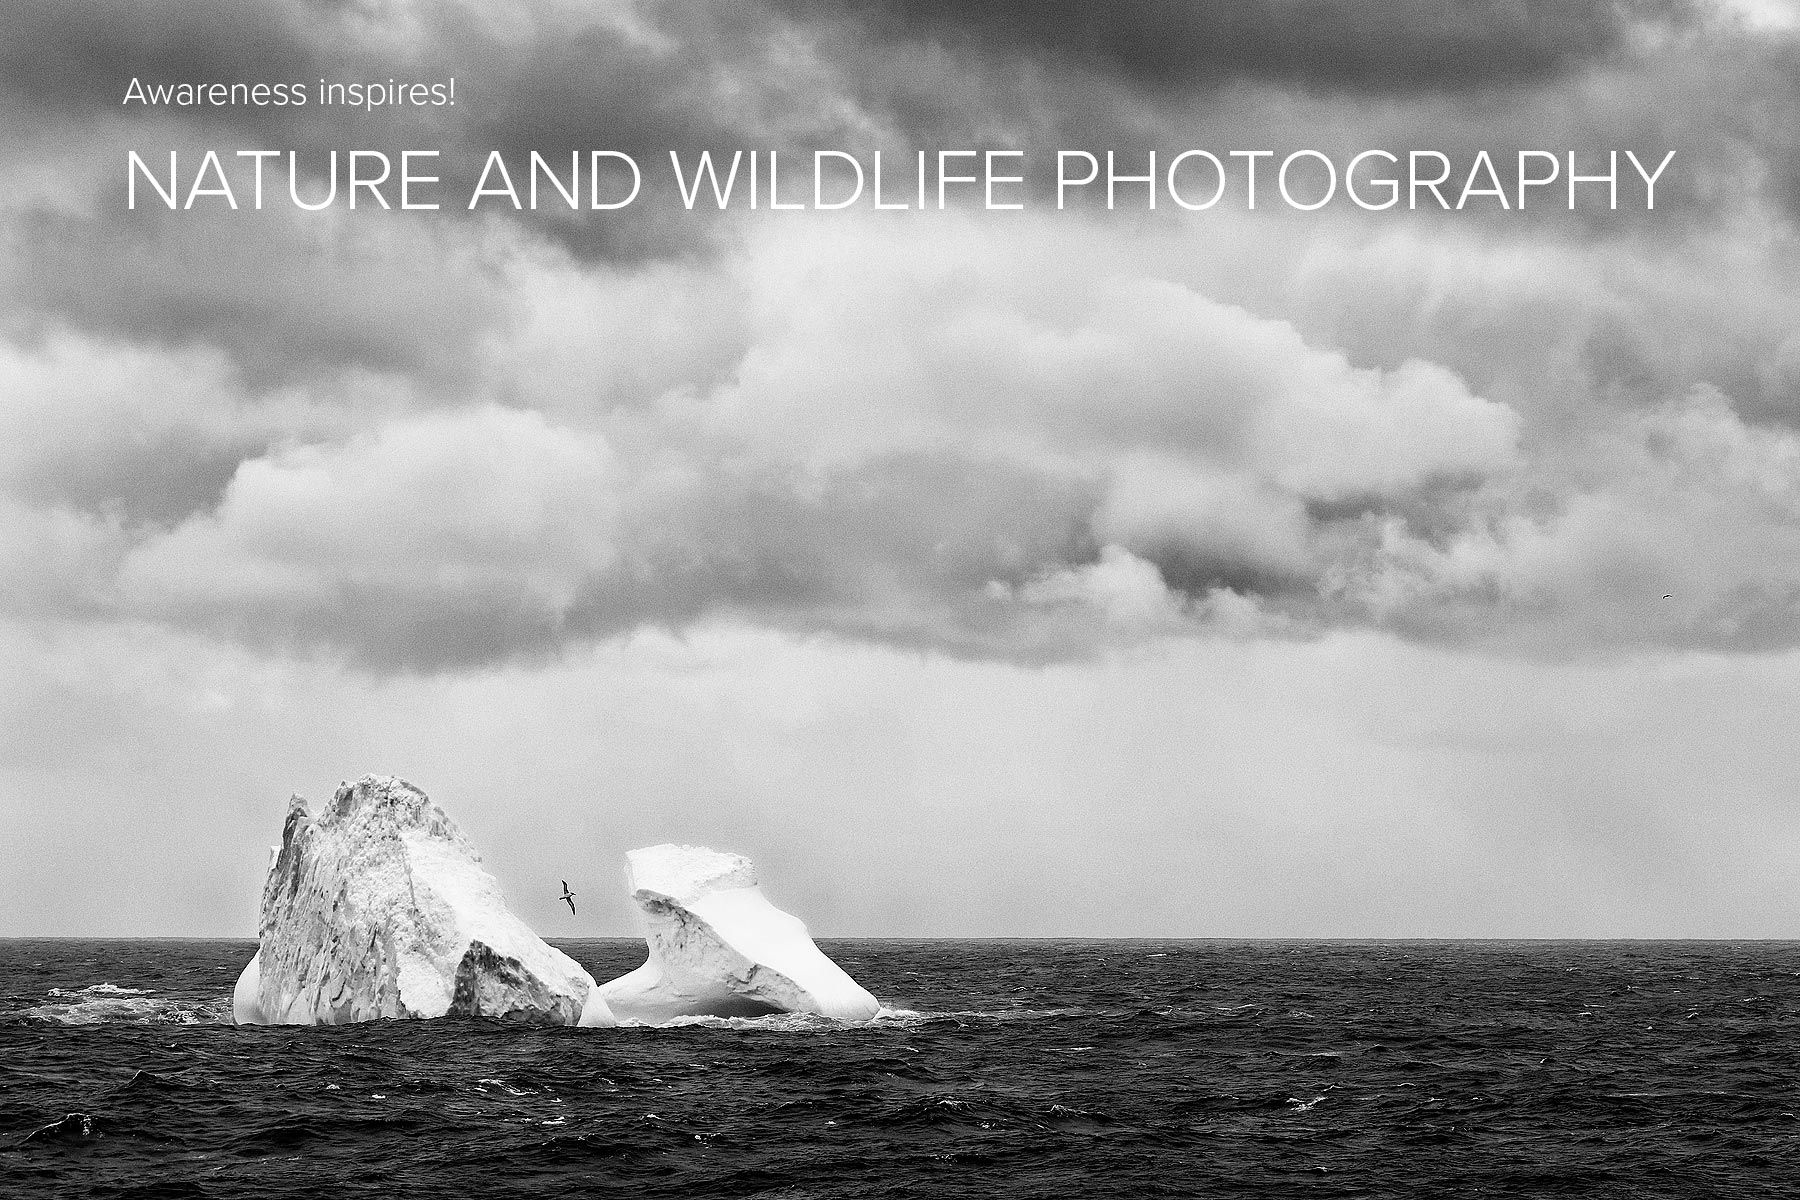 Iceberg-with-Grey-headed-albatross-flying-2_B&W_S6A1005-Bird-Island,-South-Georgia-Islands,-Southern-ocean.jpg